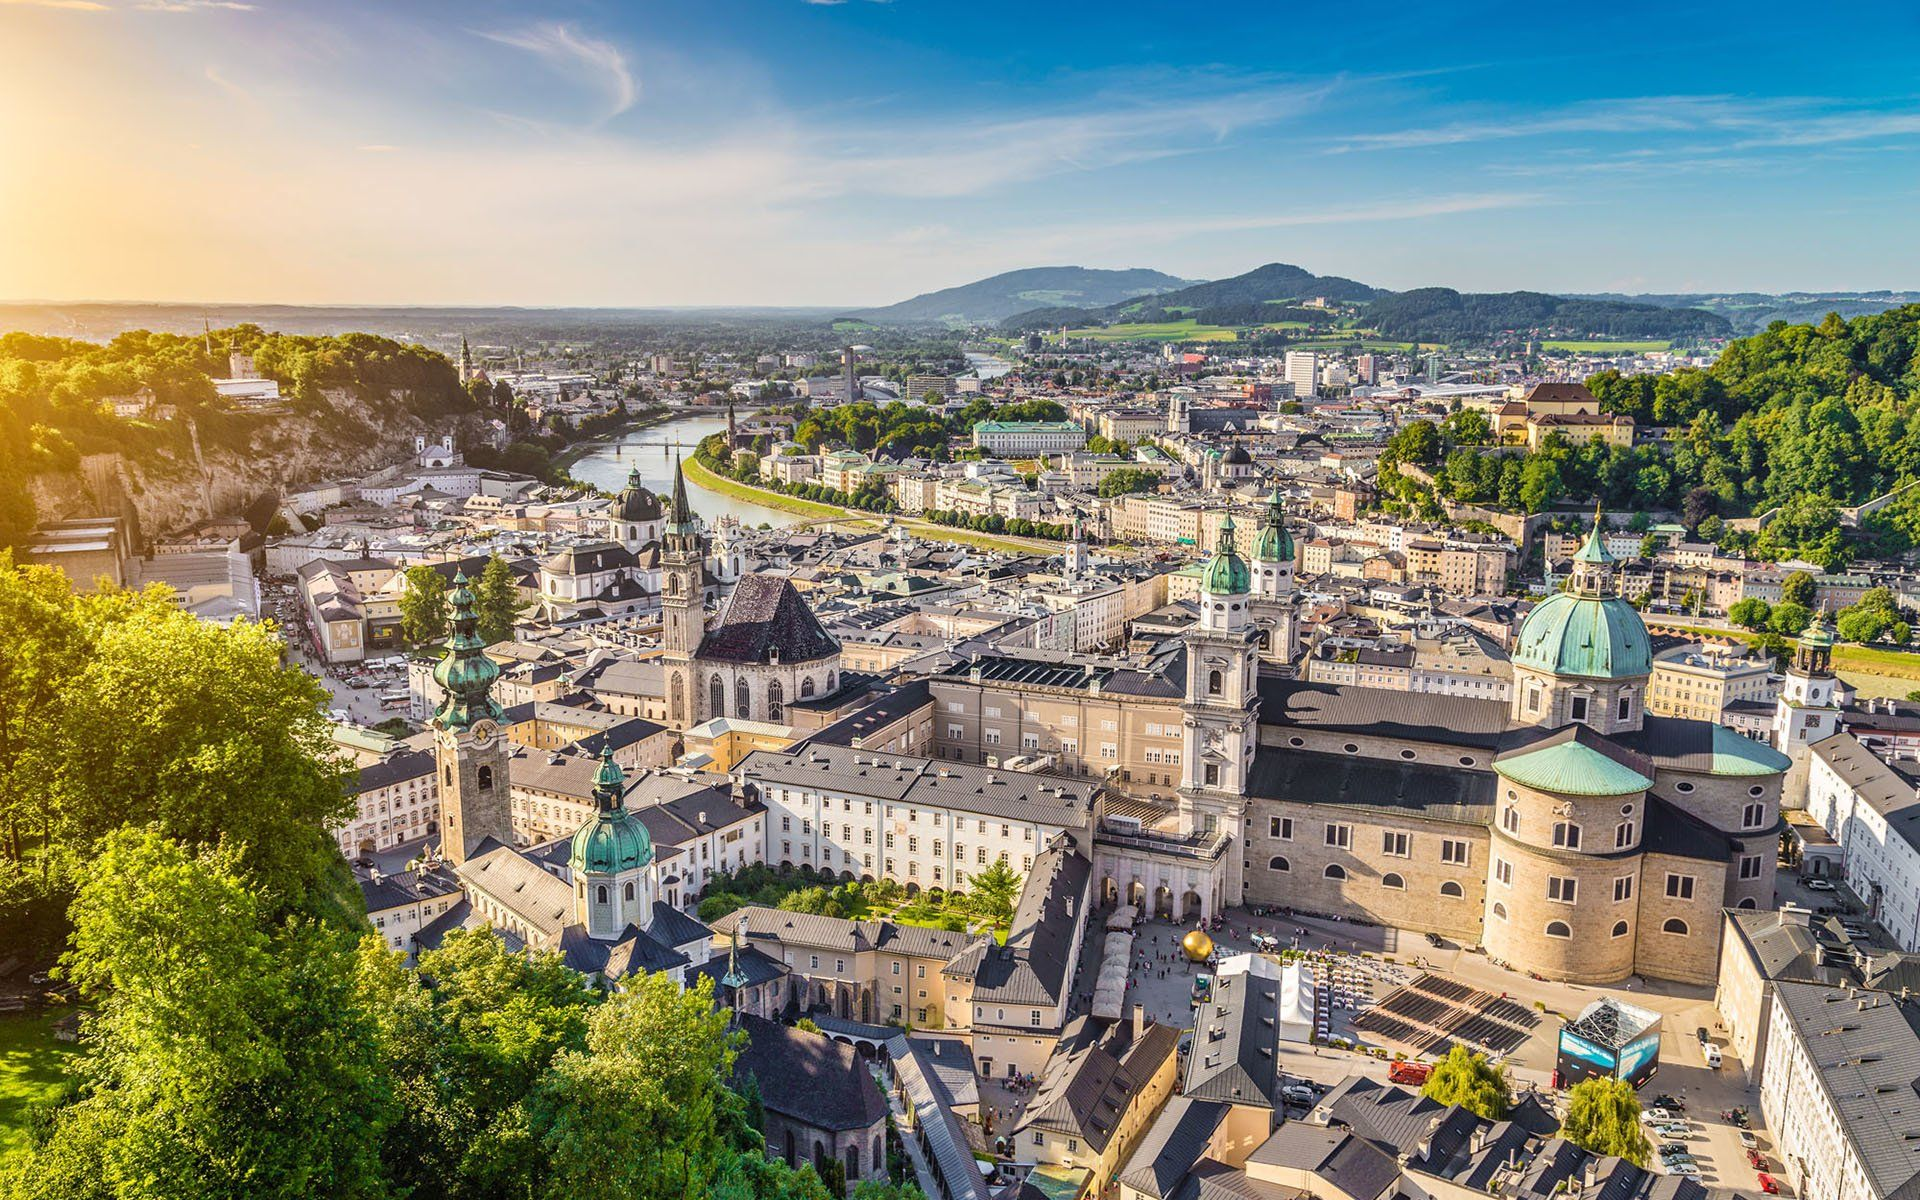 Man Made Salzburg Austria Europe City Wallpaper Travel Inspiration 1920x1200